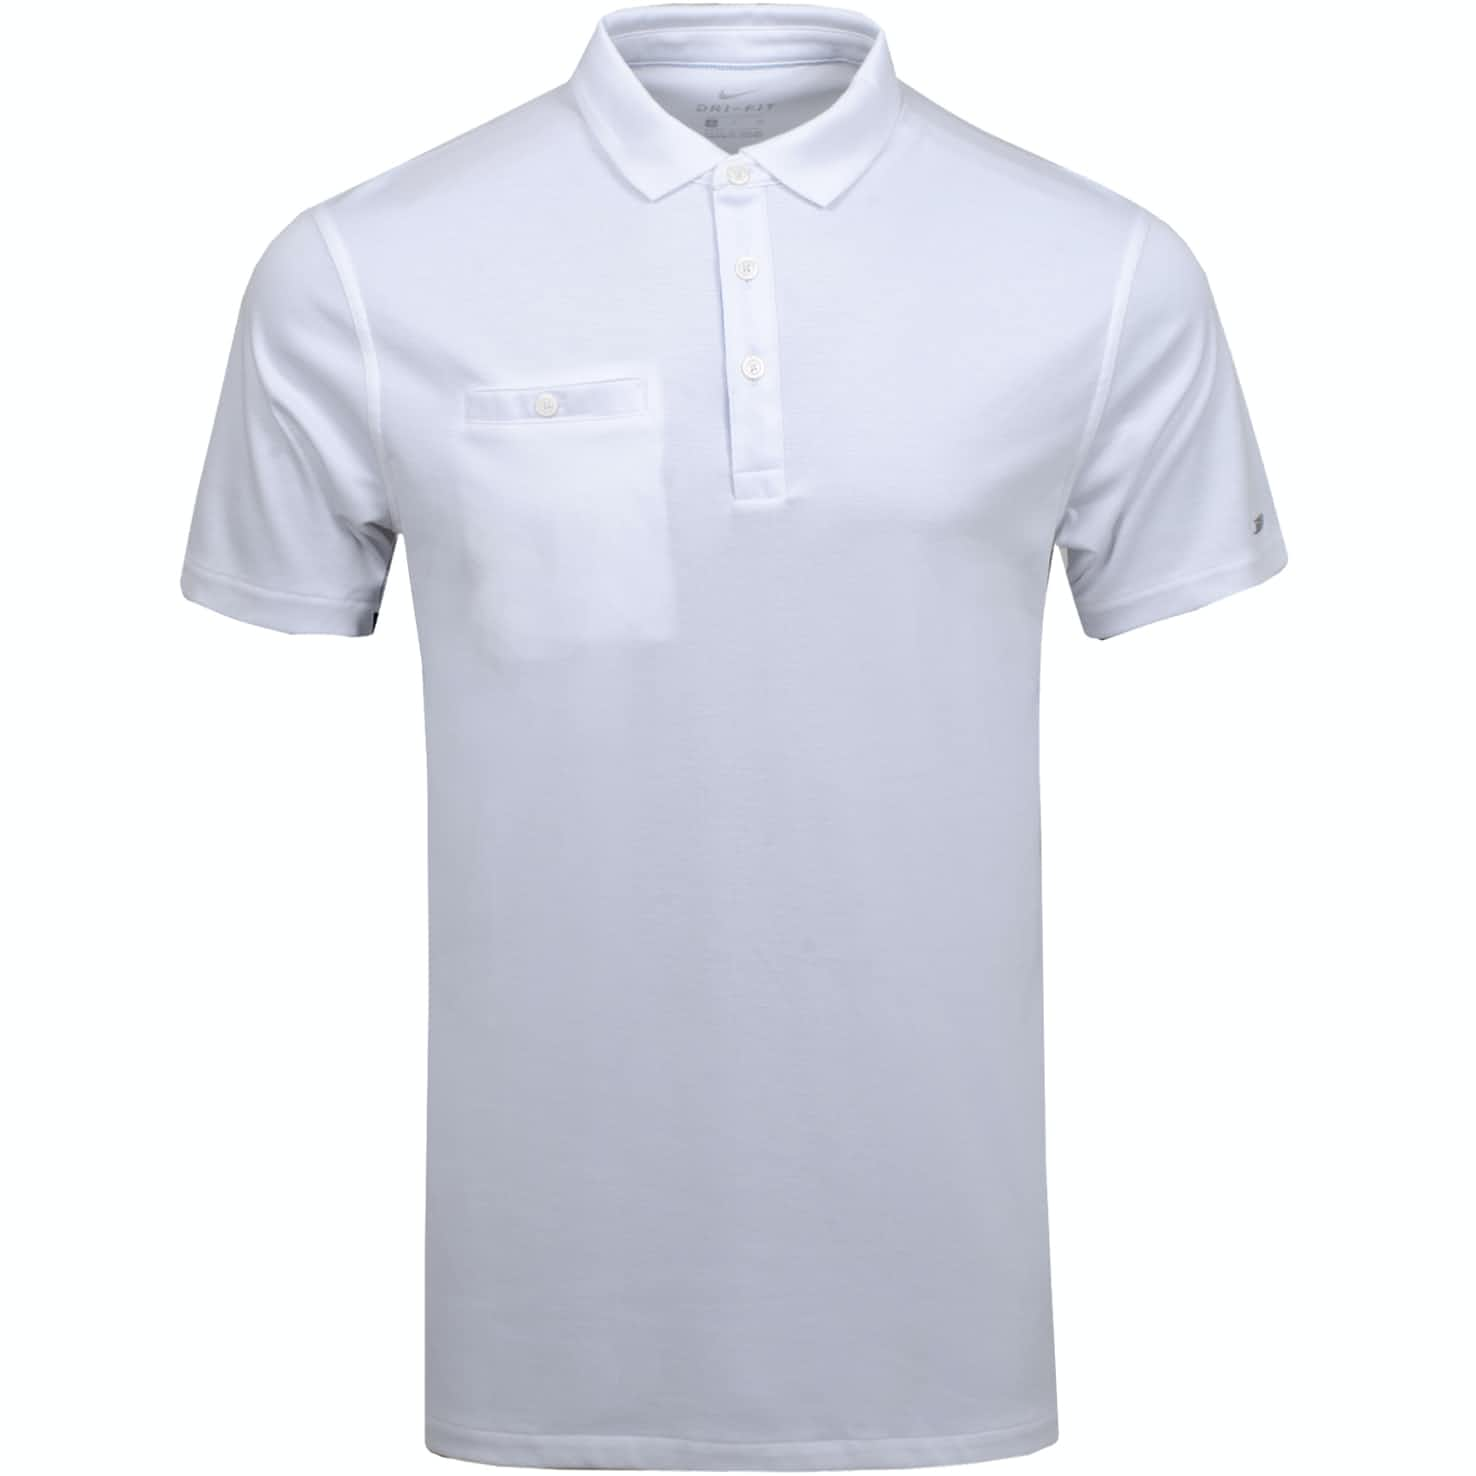 Dri-Fit Player Solid Polo White/Brushed Silver - Summer 19